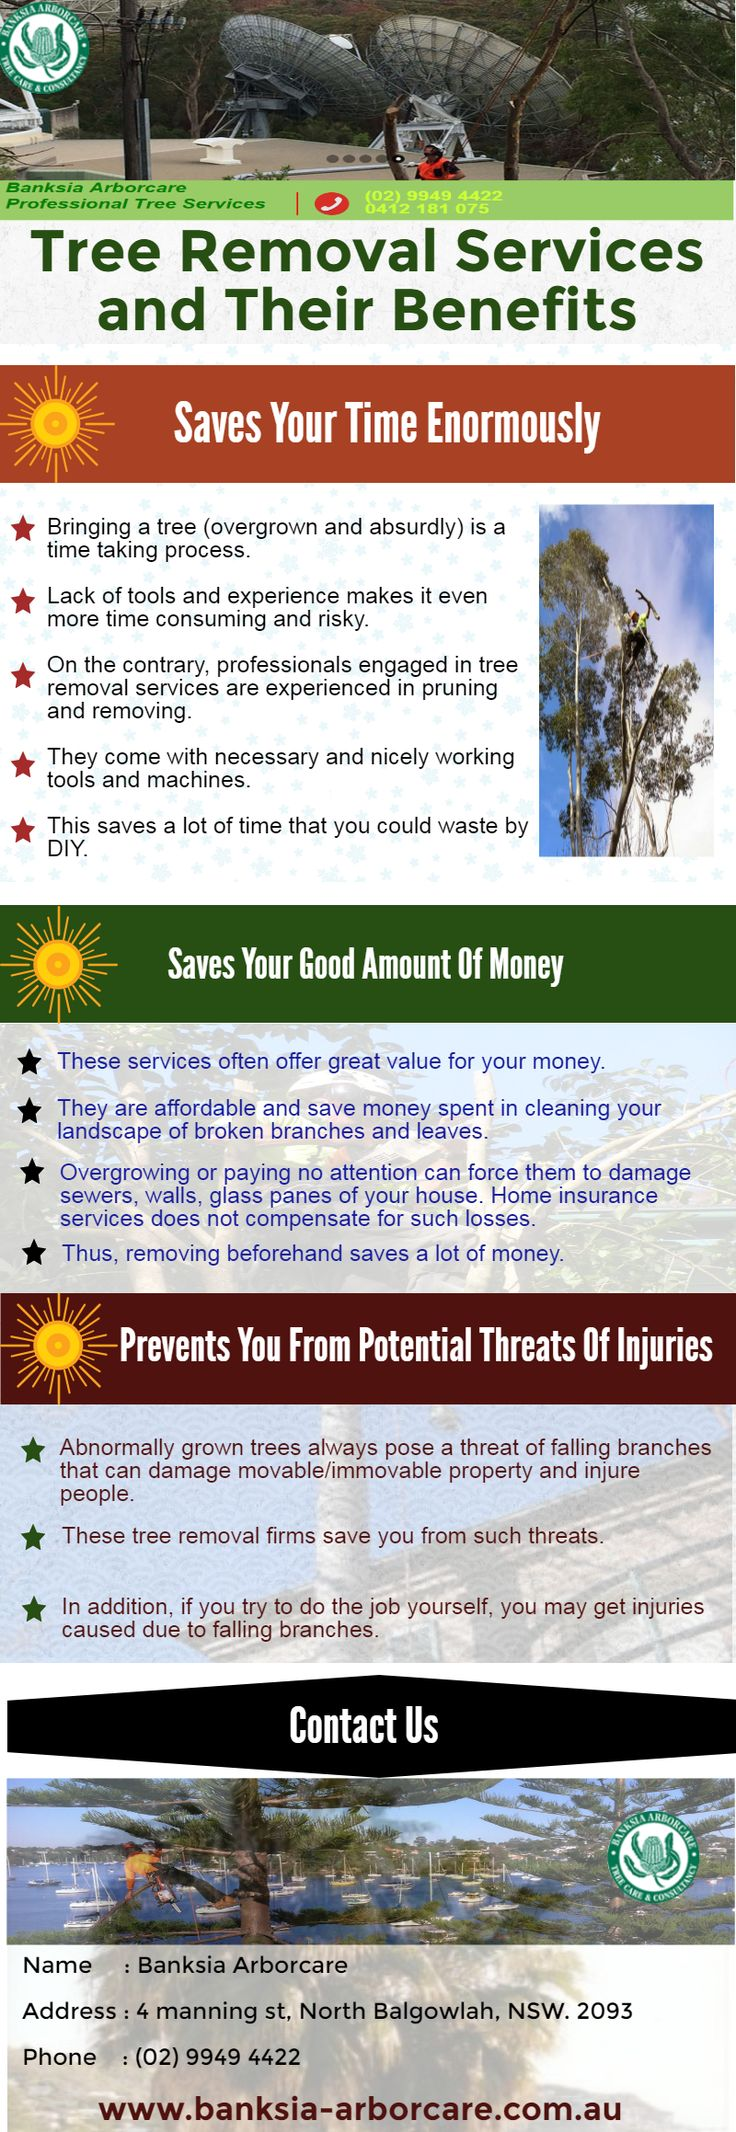 To get the most reliable and cost-effective tree removal services Sydney, rely upon the experts of BANKSIA ARBORCARE.